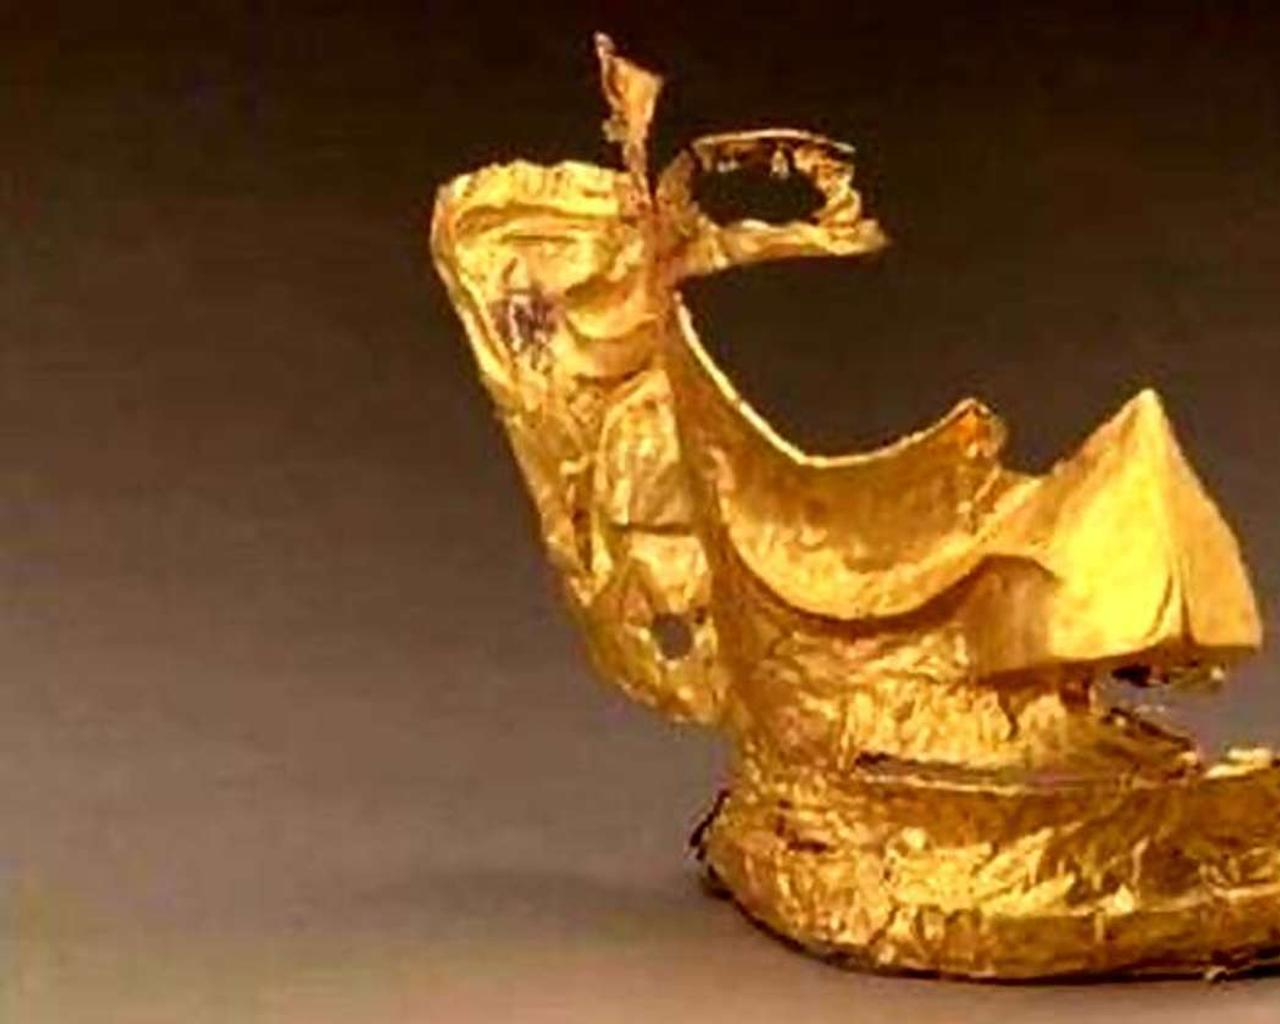 China: A 3,000-year-old gold mask triggers online memes